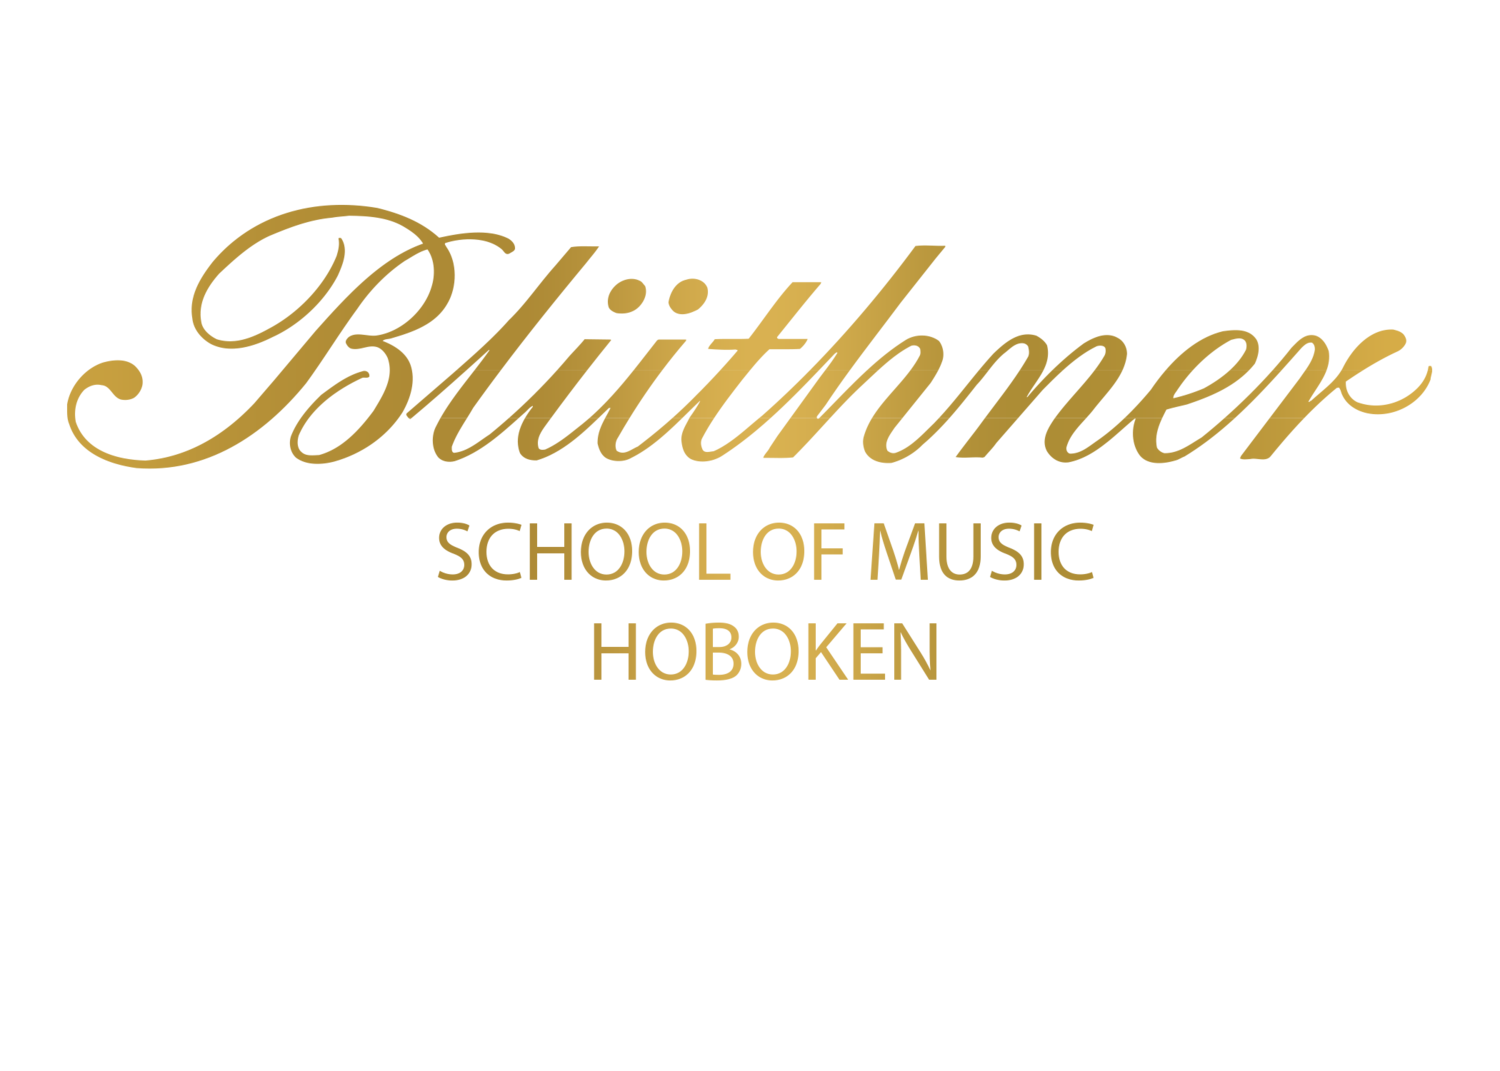 Blüthner School of Music